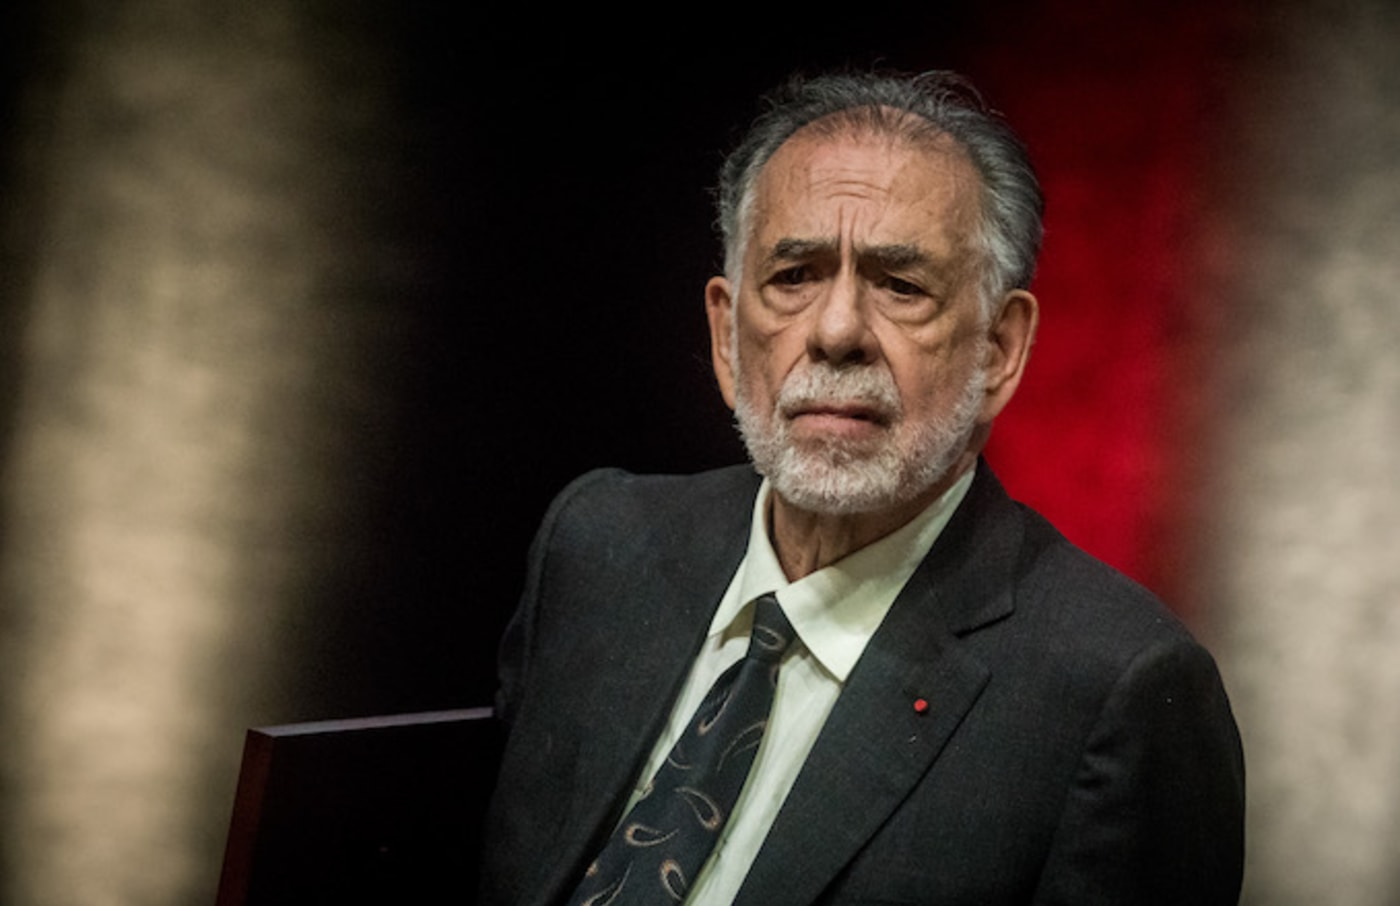 Francis Ford Coppola receives the Lumiere Award during Lumiere Film Festival.